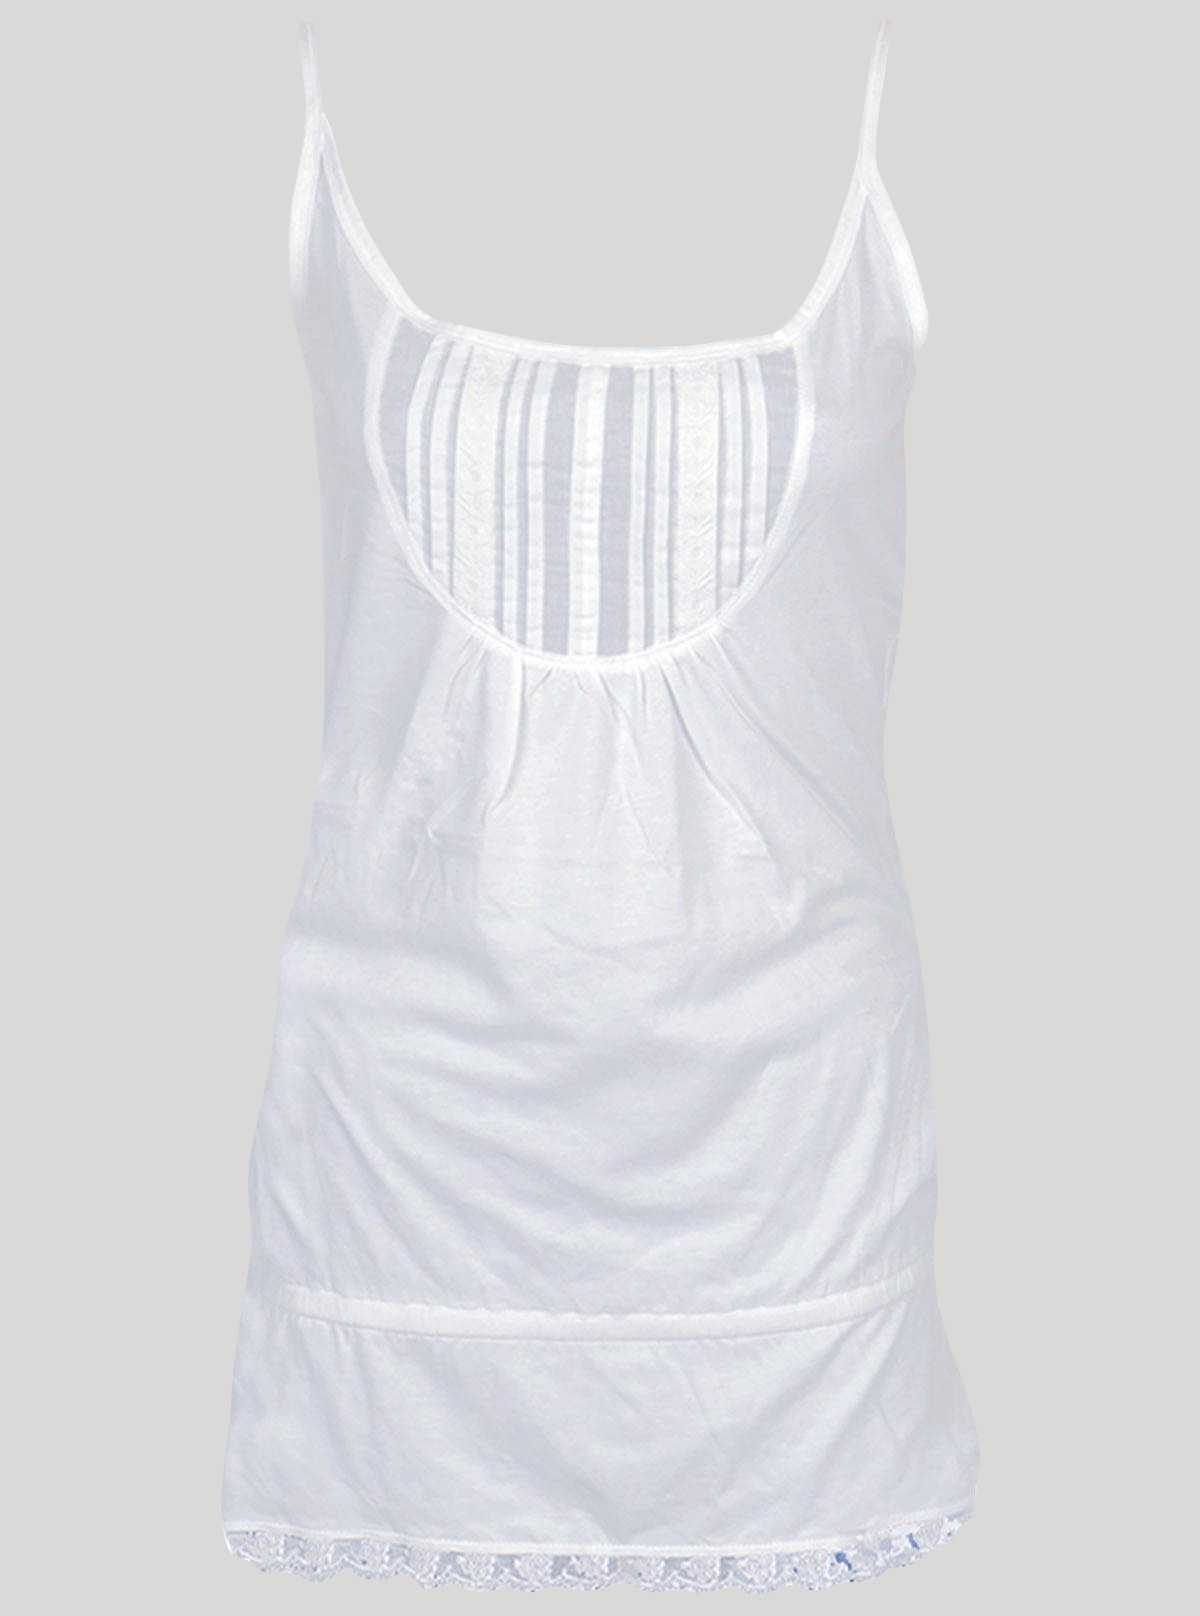 Sleeveless Cotton Top Boer and Fitch - 1